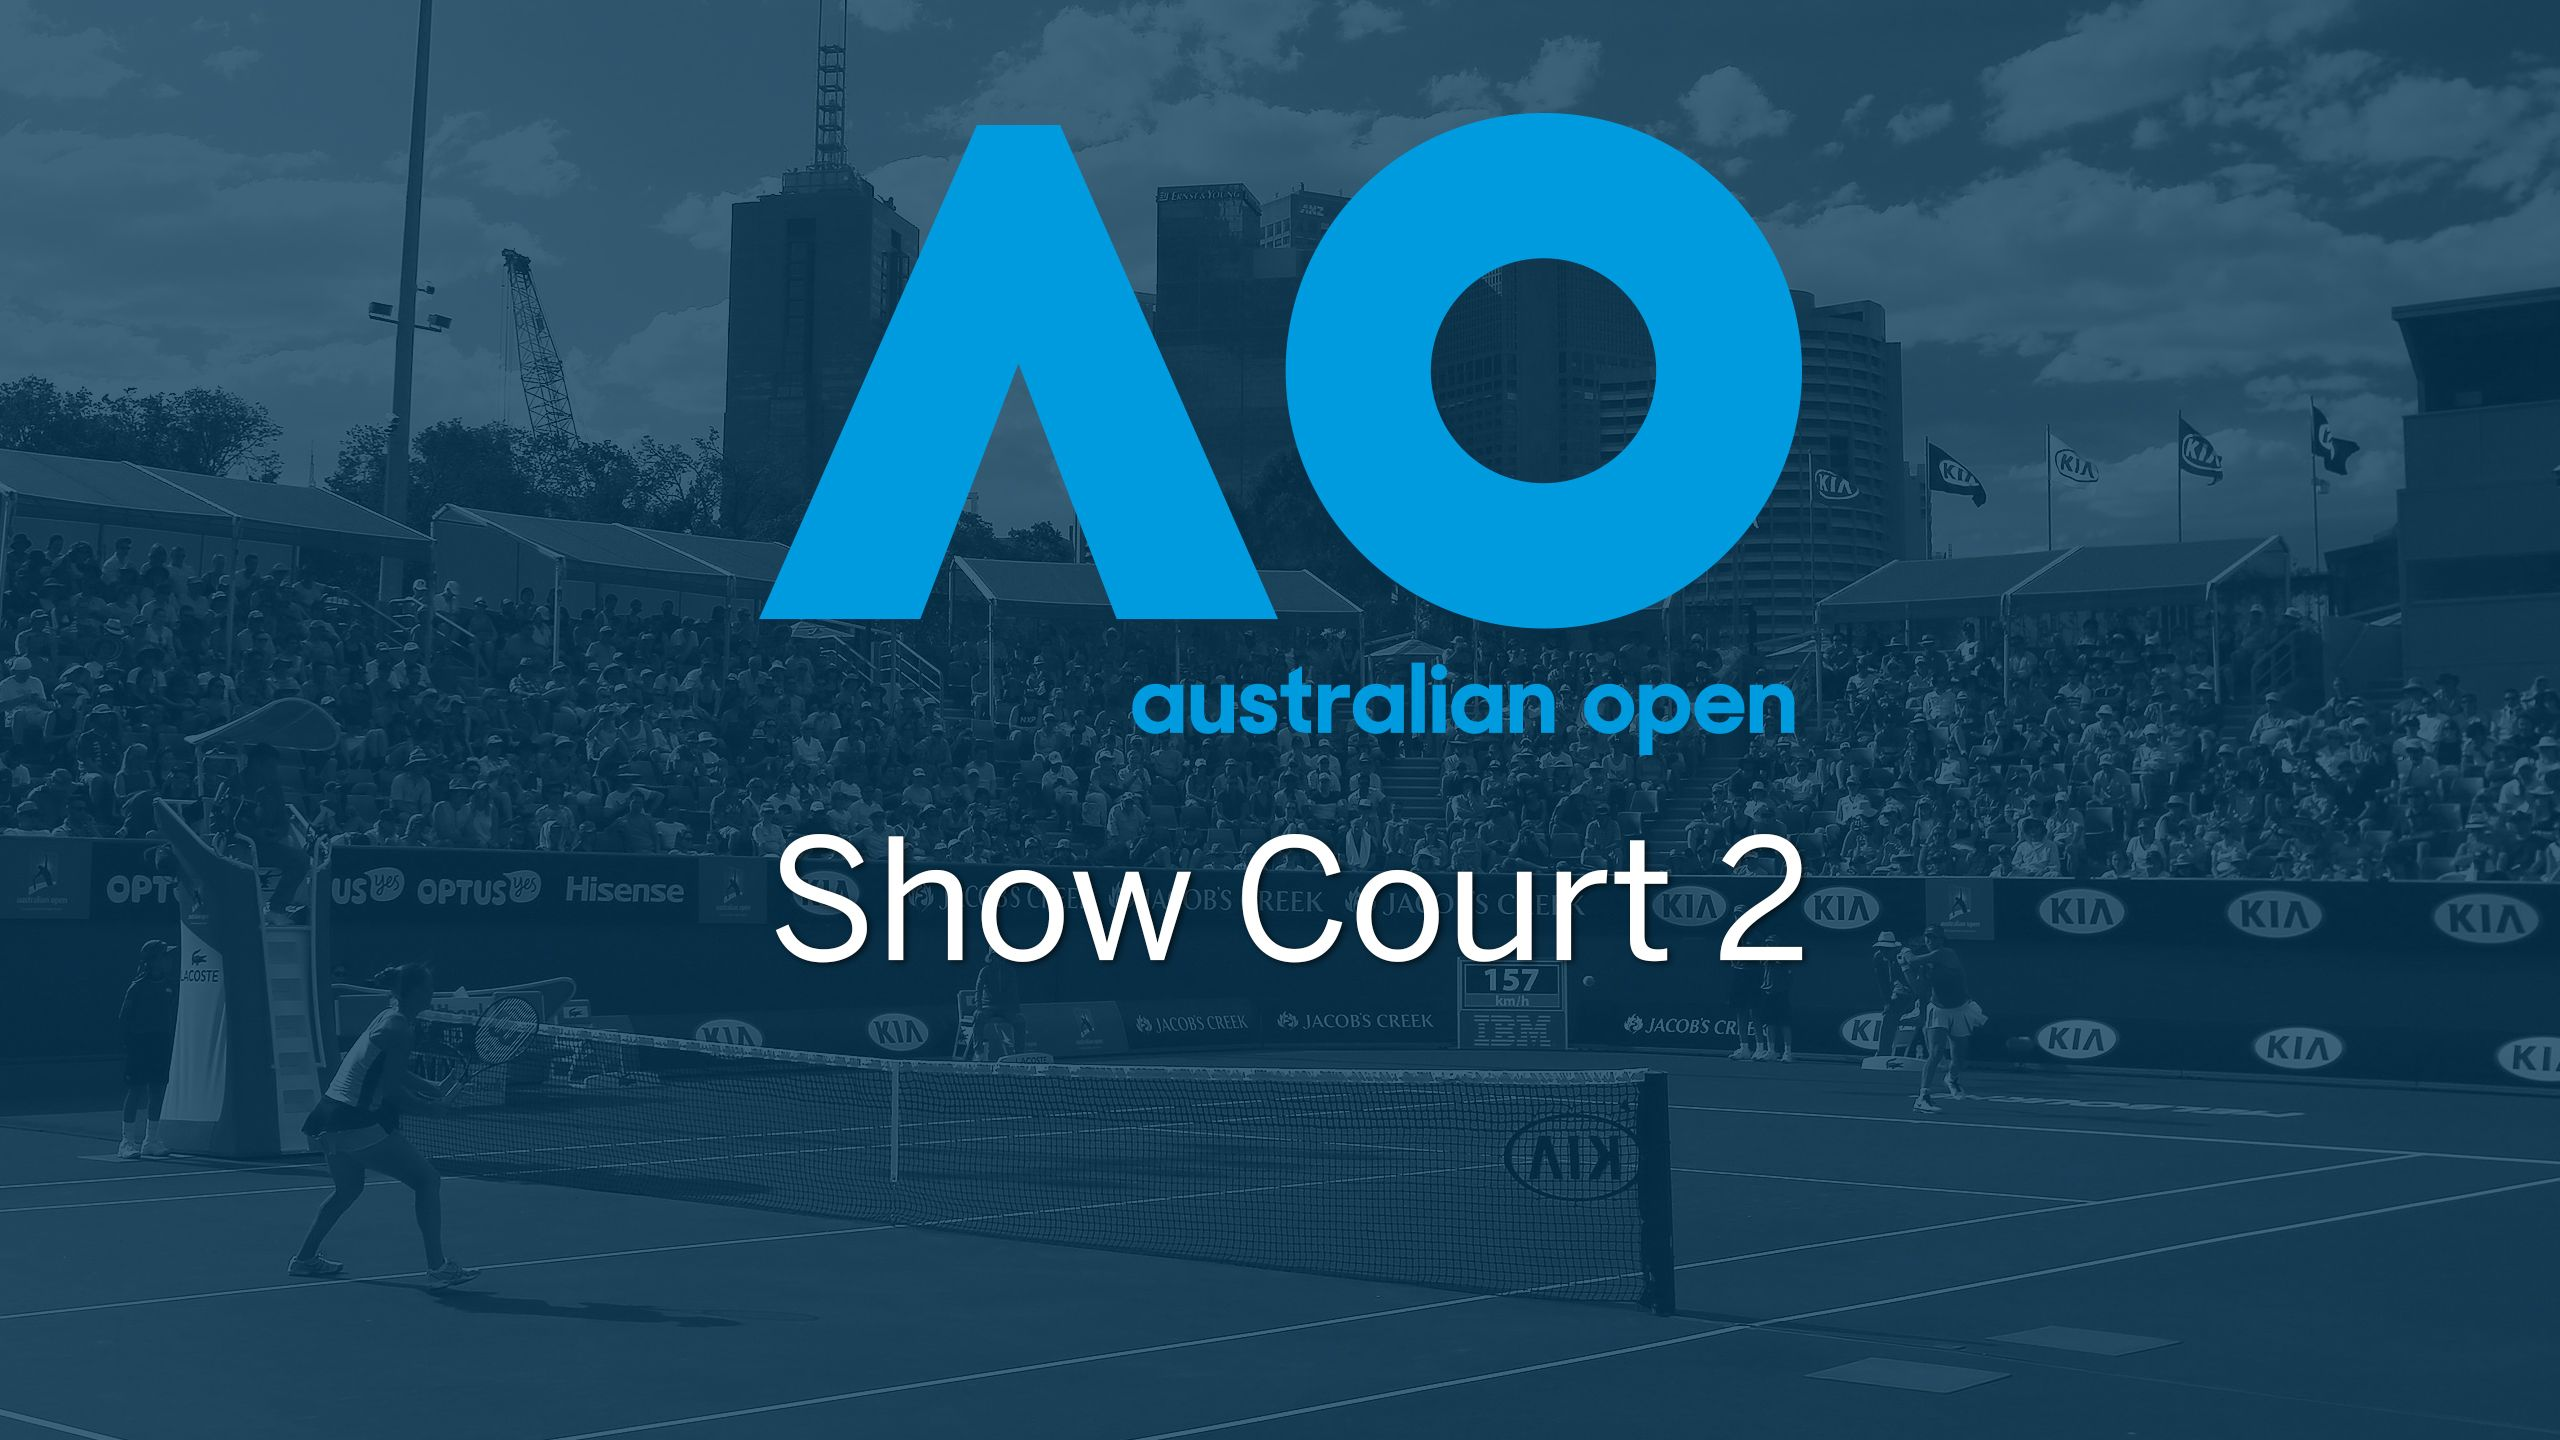 (4) Safarova/Strycova vs. Olaru/Savchuk (Women's Doubles Second Round)